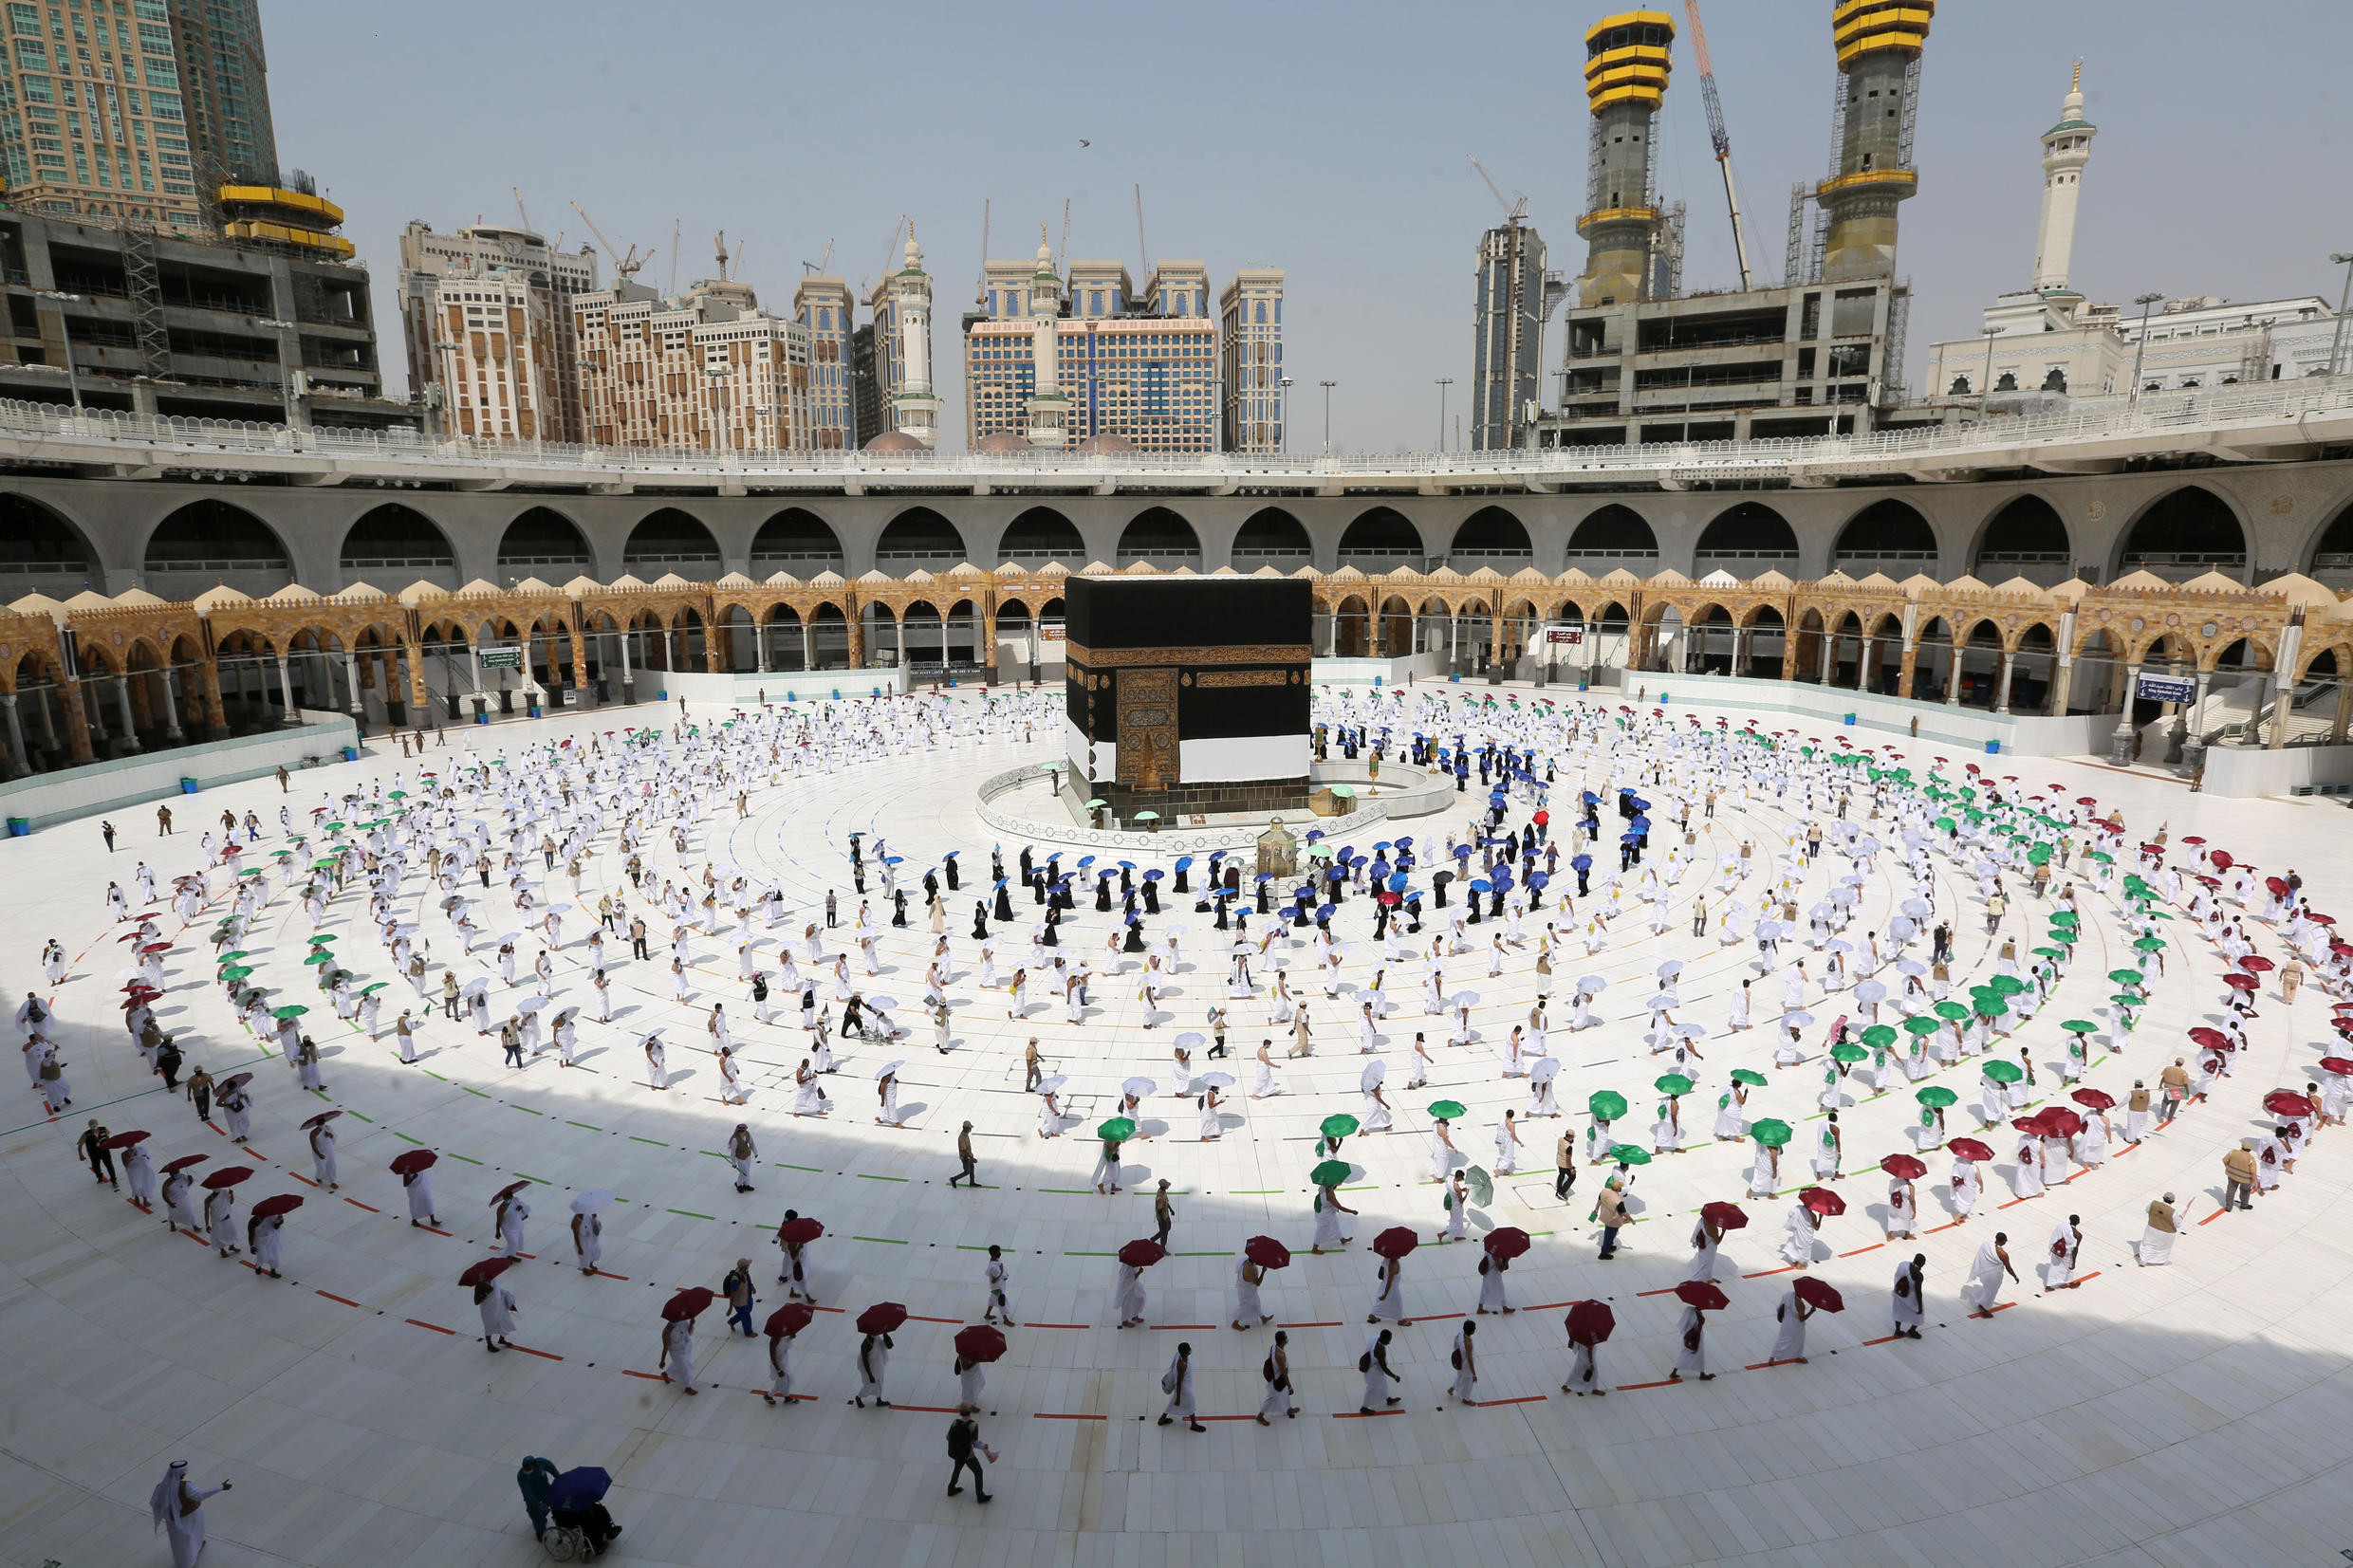 Pilgrims hold umbrellas and coloured rings as a measure against Covid-19 while circumambulating the Kaaba, Islam's holiest shrine, at the Grand Mosque in Mecca, at the start of the annual Muslim hajj pilgrimage in 2020